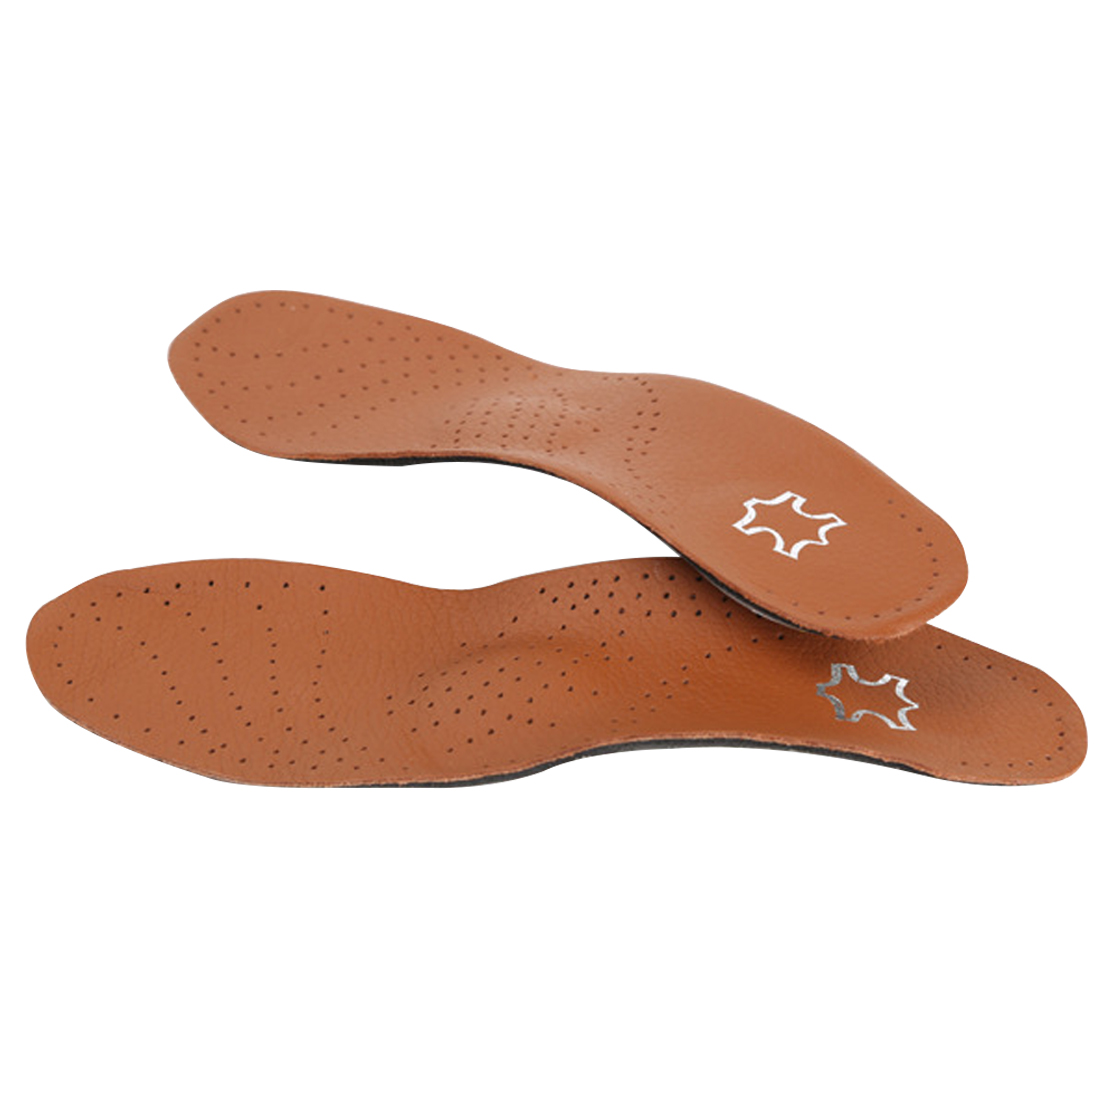 Hot sale PU Leather Latex Orthopedic Insole Antibacterial Active Carbon Orthotic Arch Support Instep Cowskin Flat Foot Shoe Pad